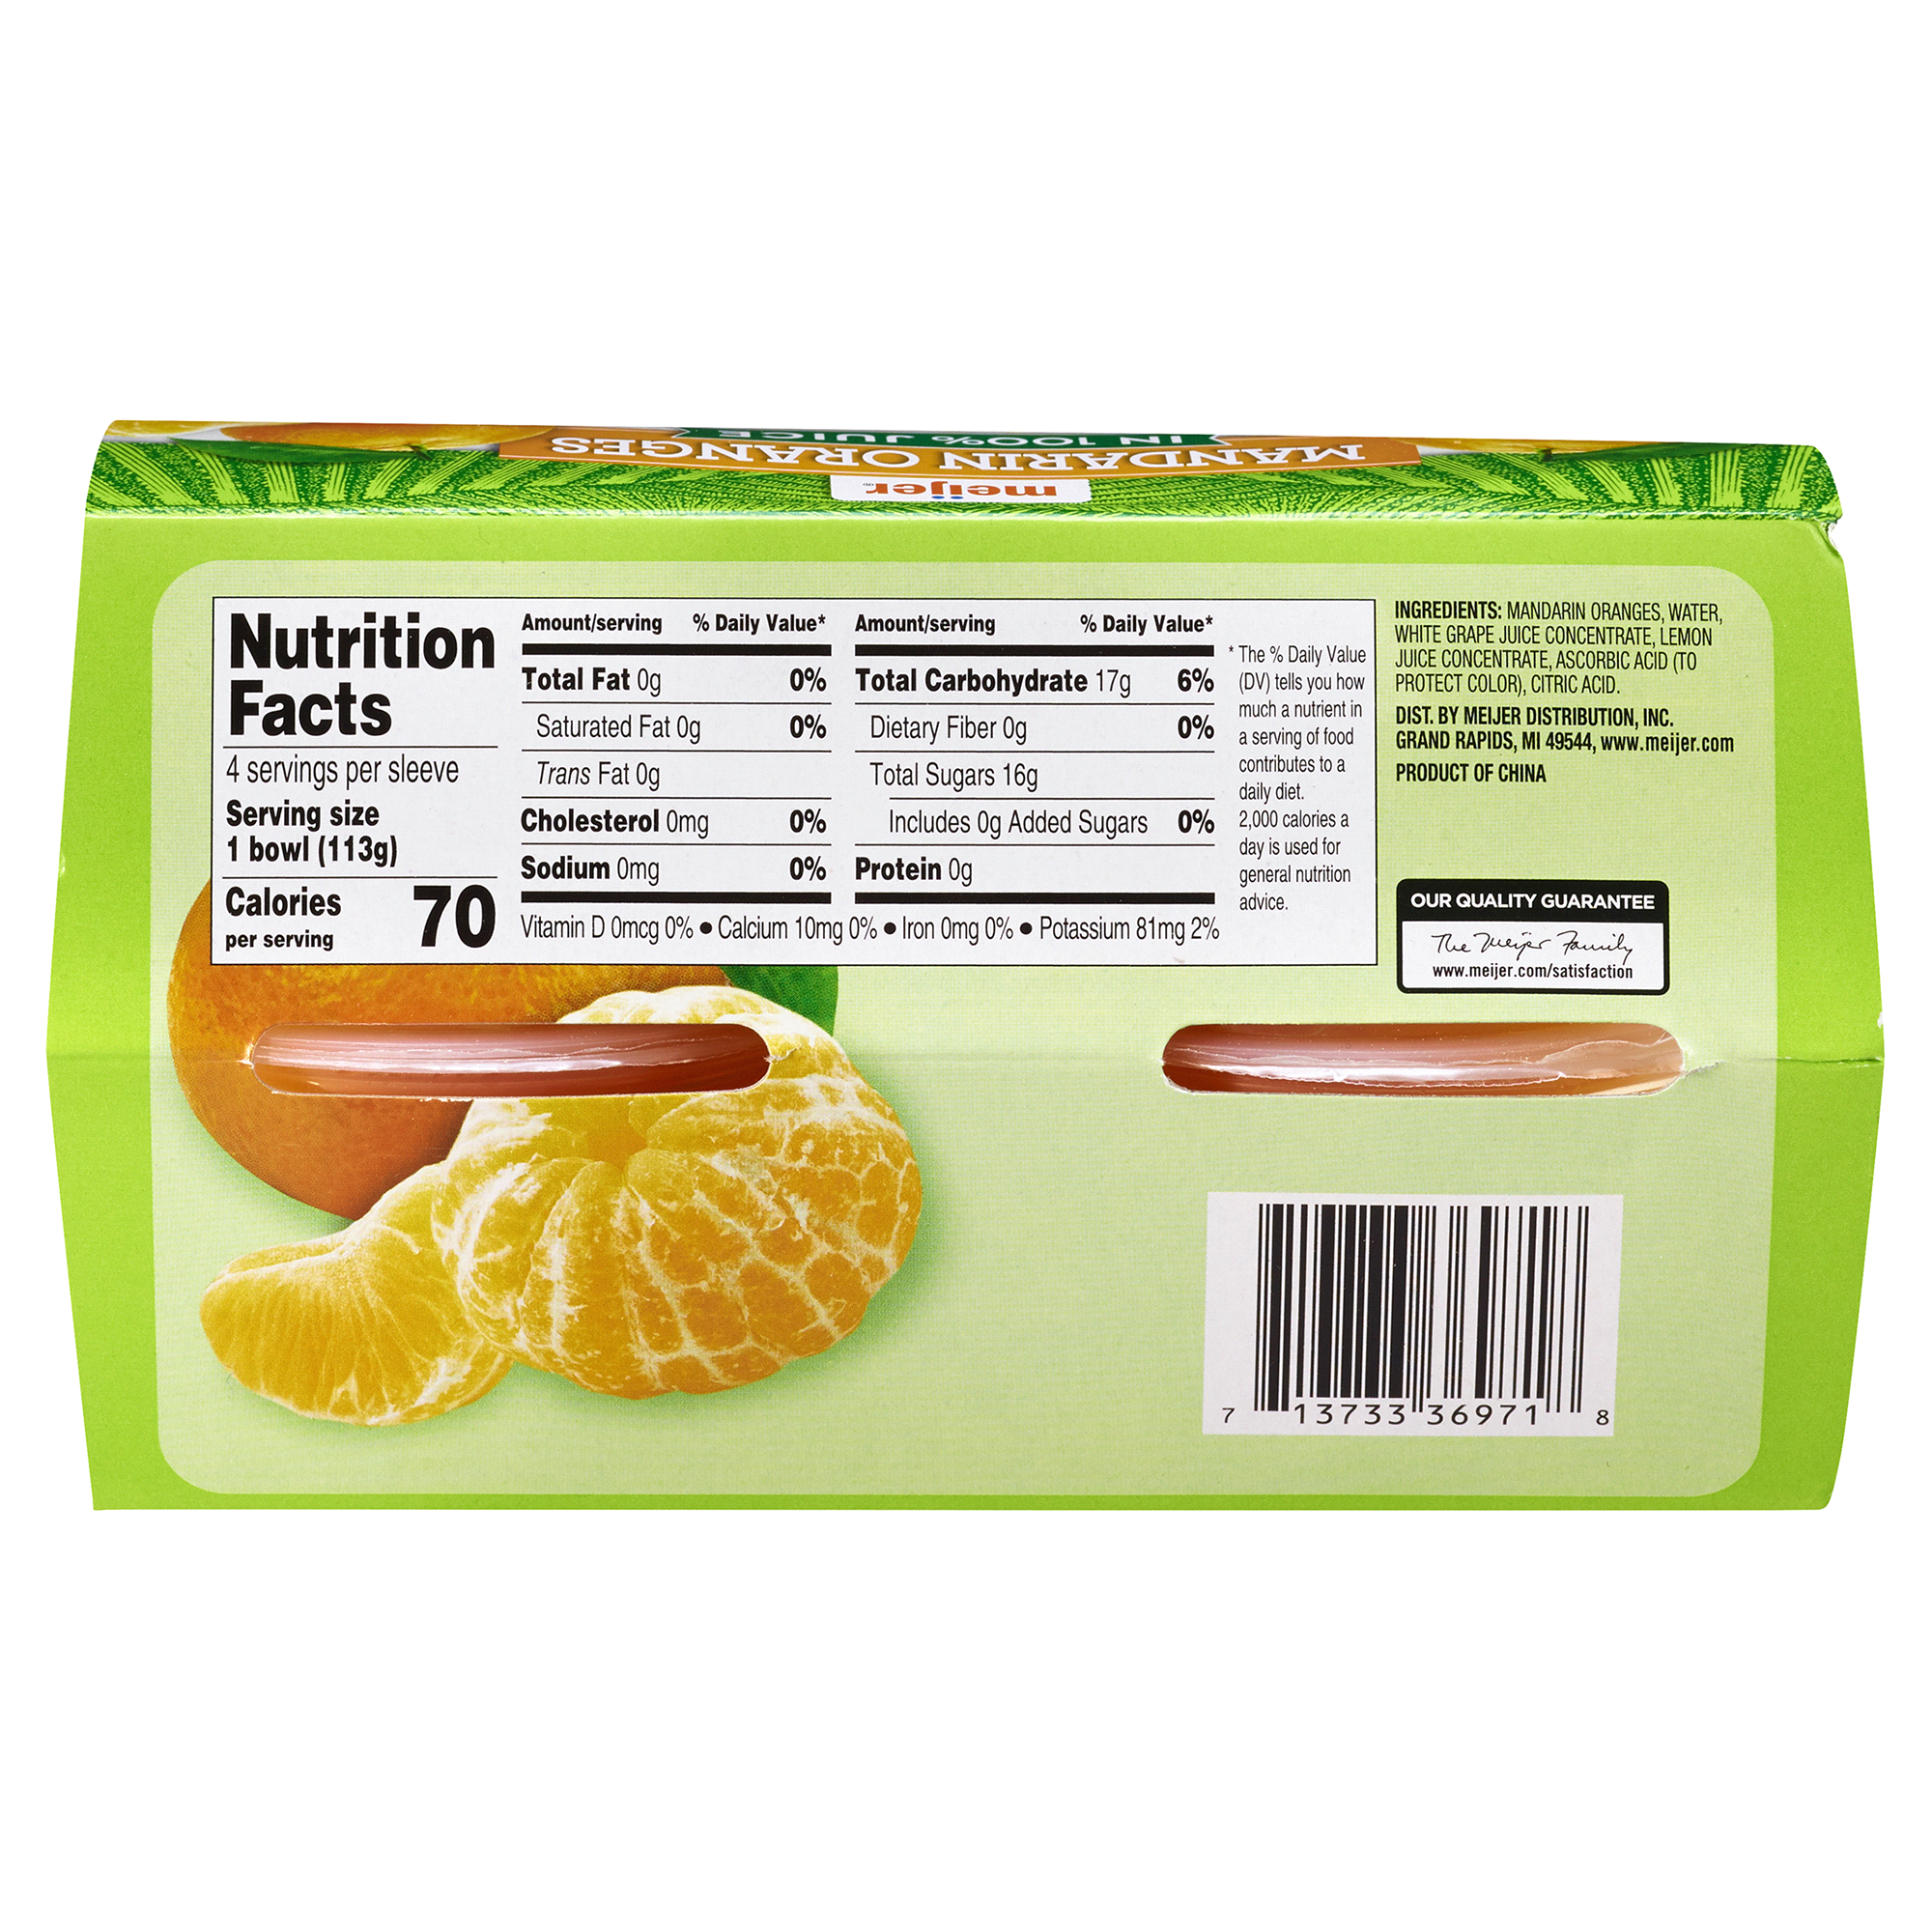 meijer mandarin oranges in 100% juice 4 pk/4 oz | meijer